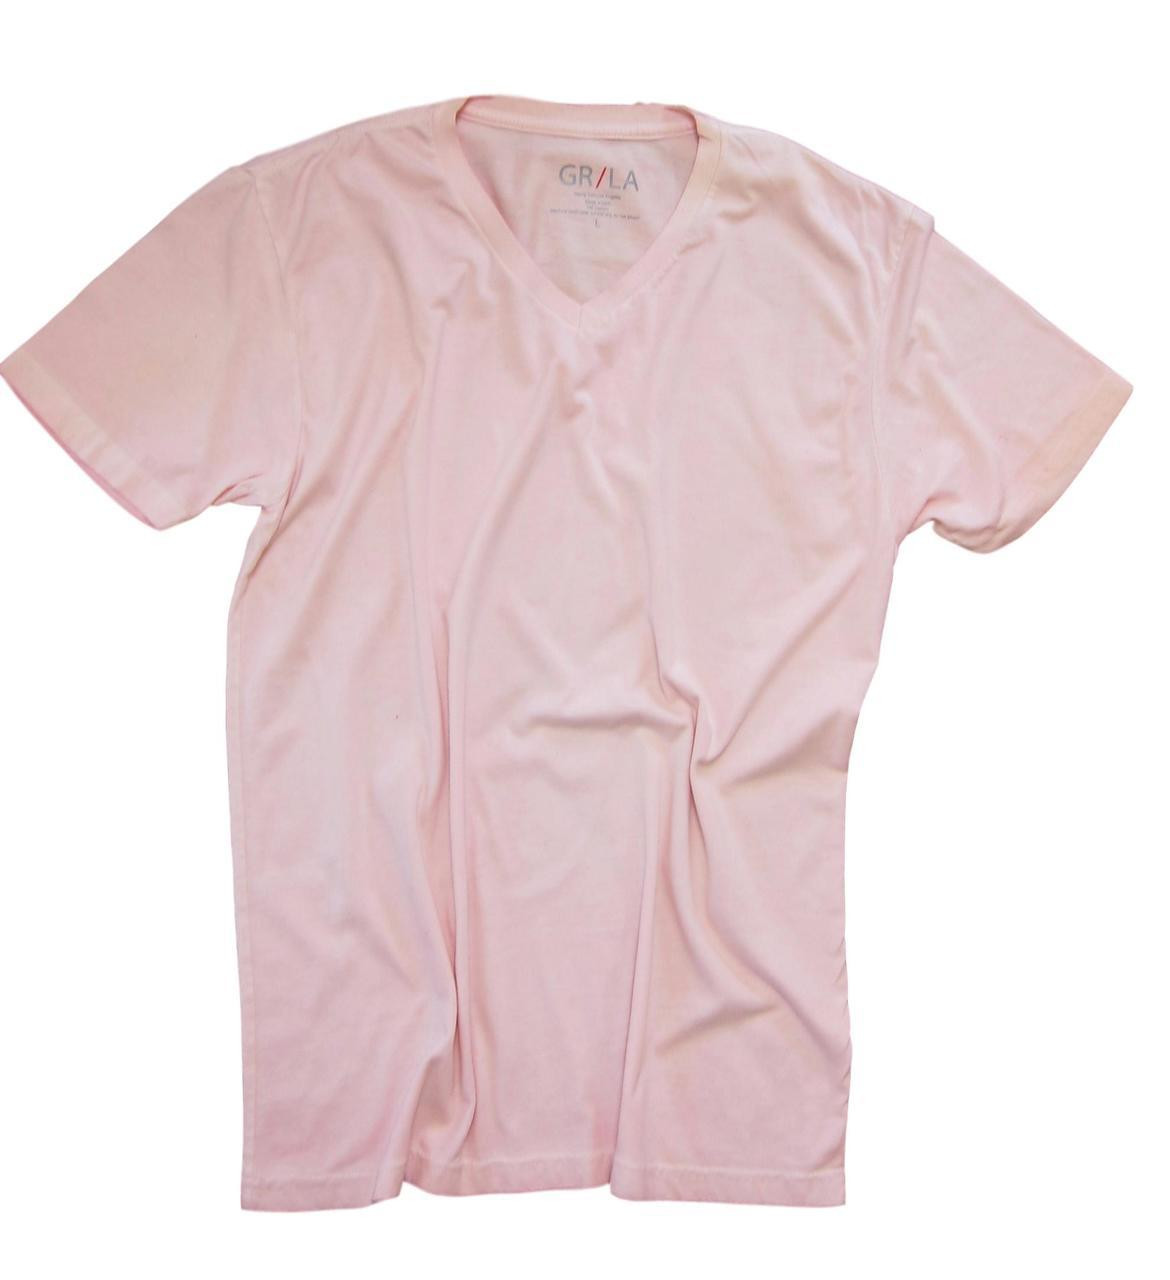 58a9d4d71190d Men s Short Sleeves - V-Neck - T-Shirt Color Pink   Garment Dyed